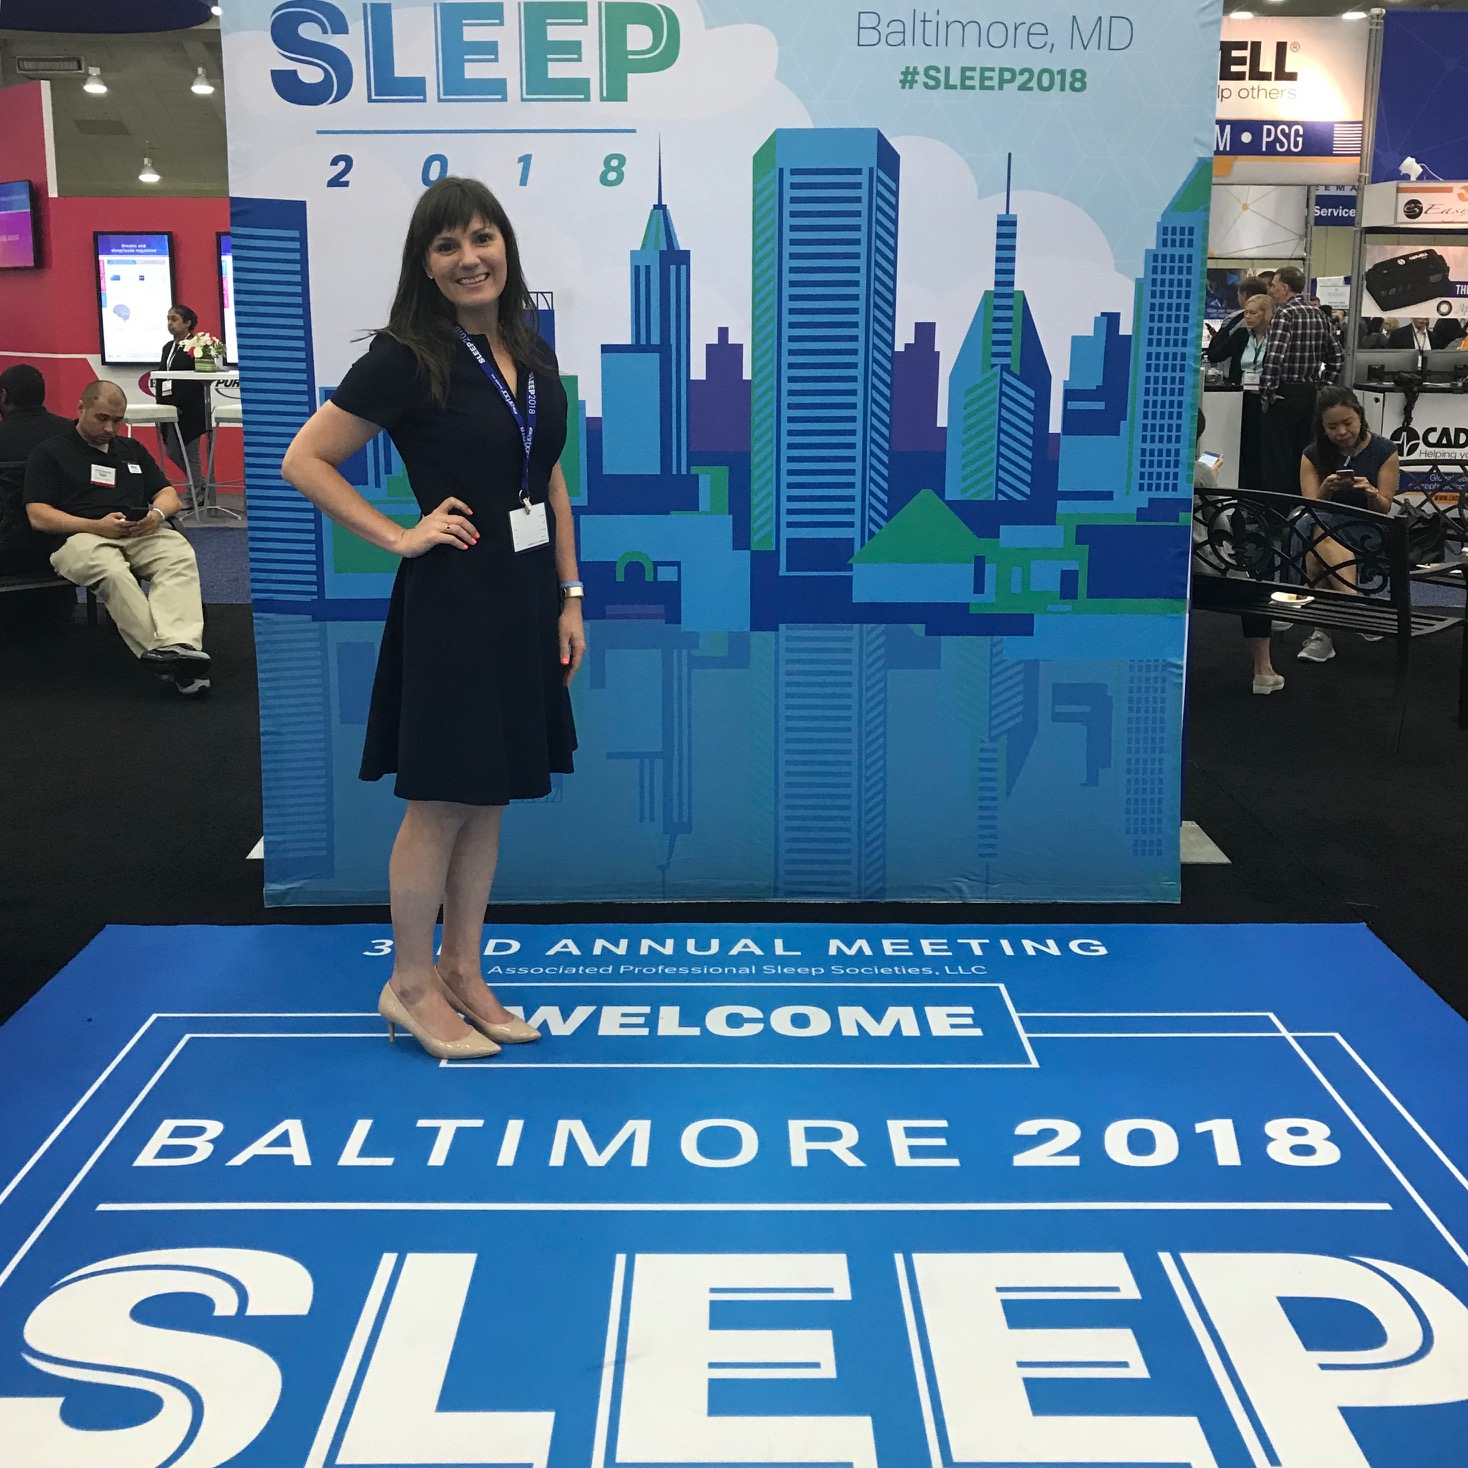 2018 Exciting Update: Advancing Novel Treatment Options for Narcolepsy